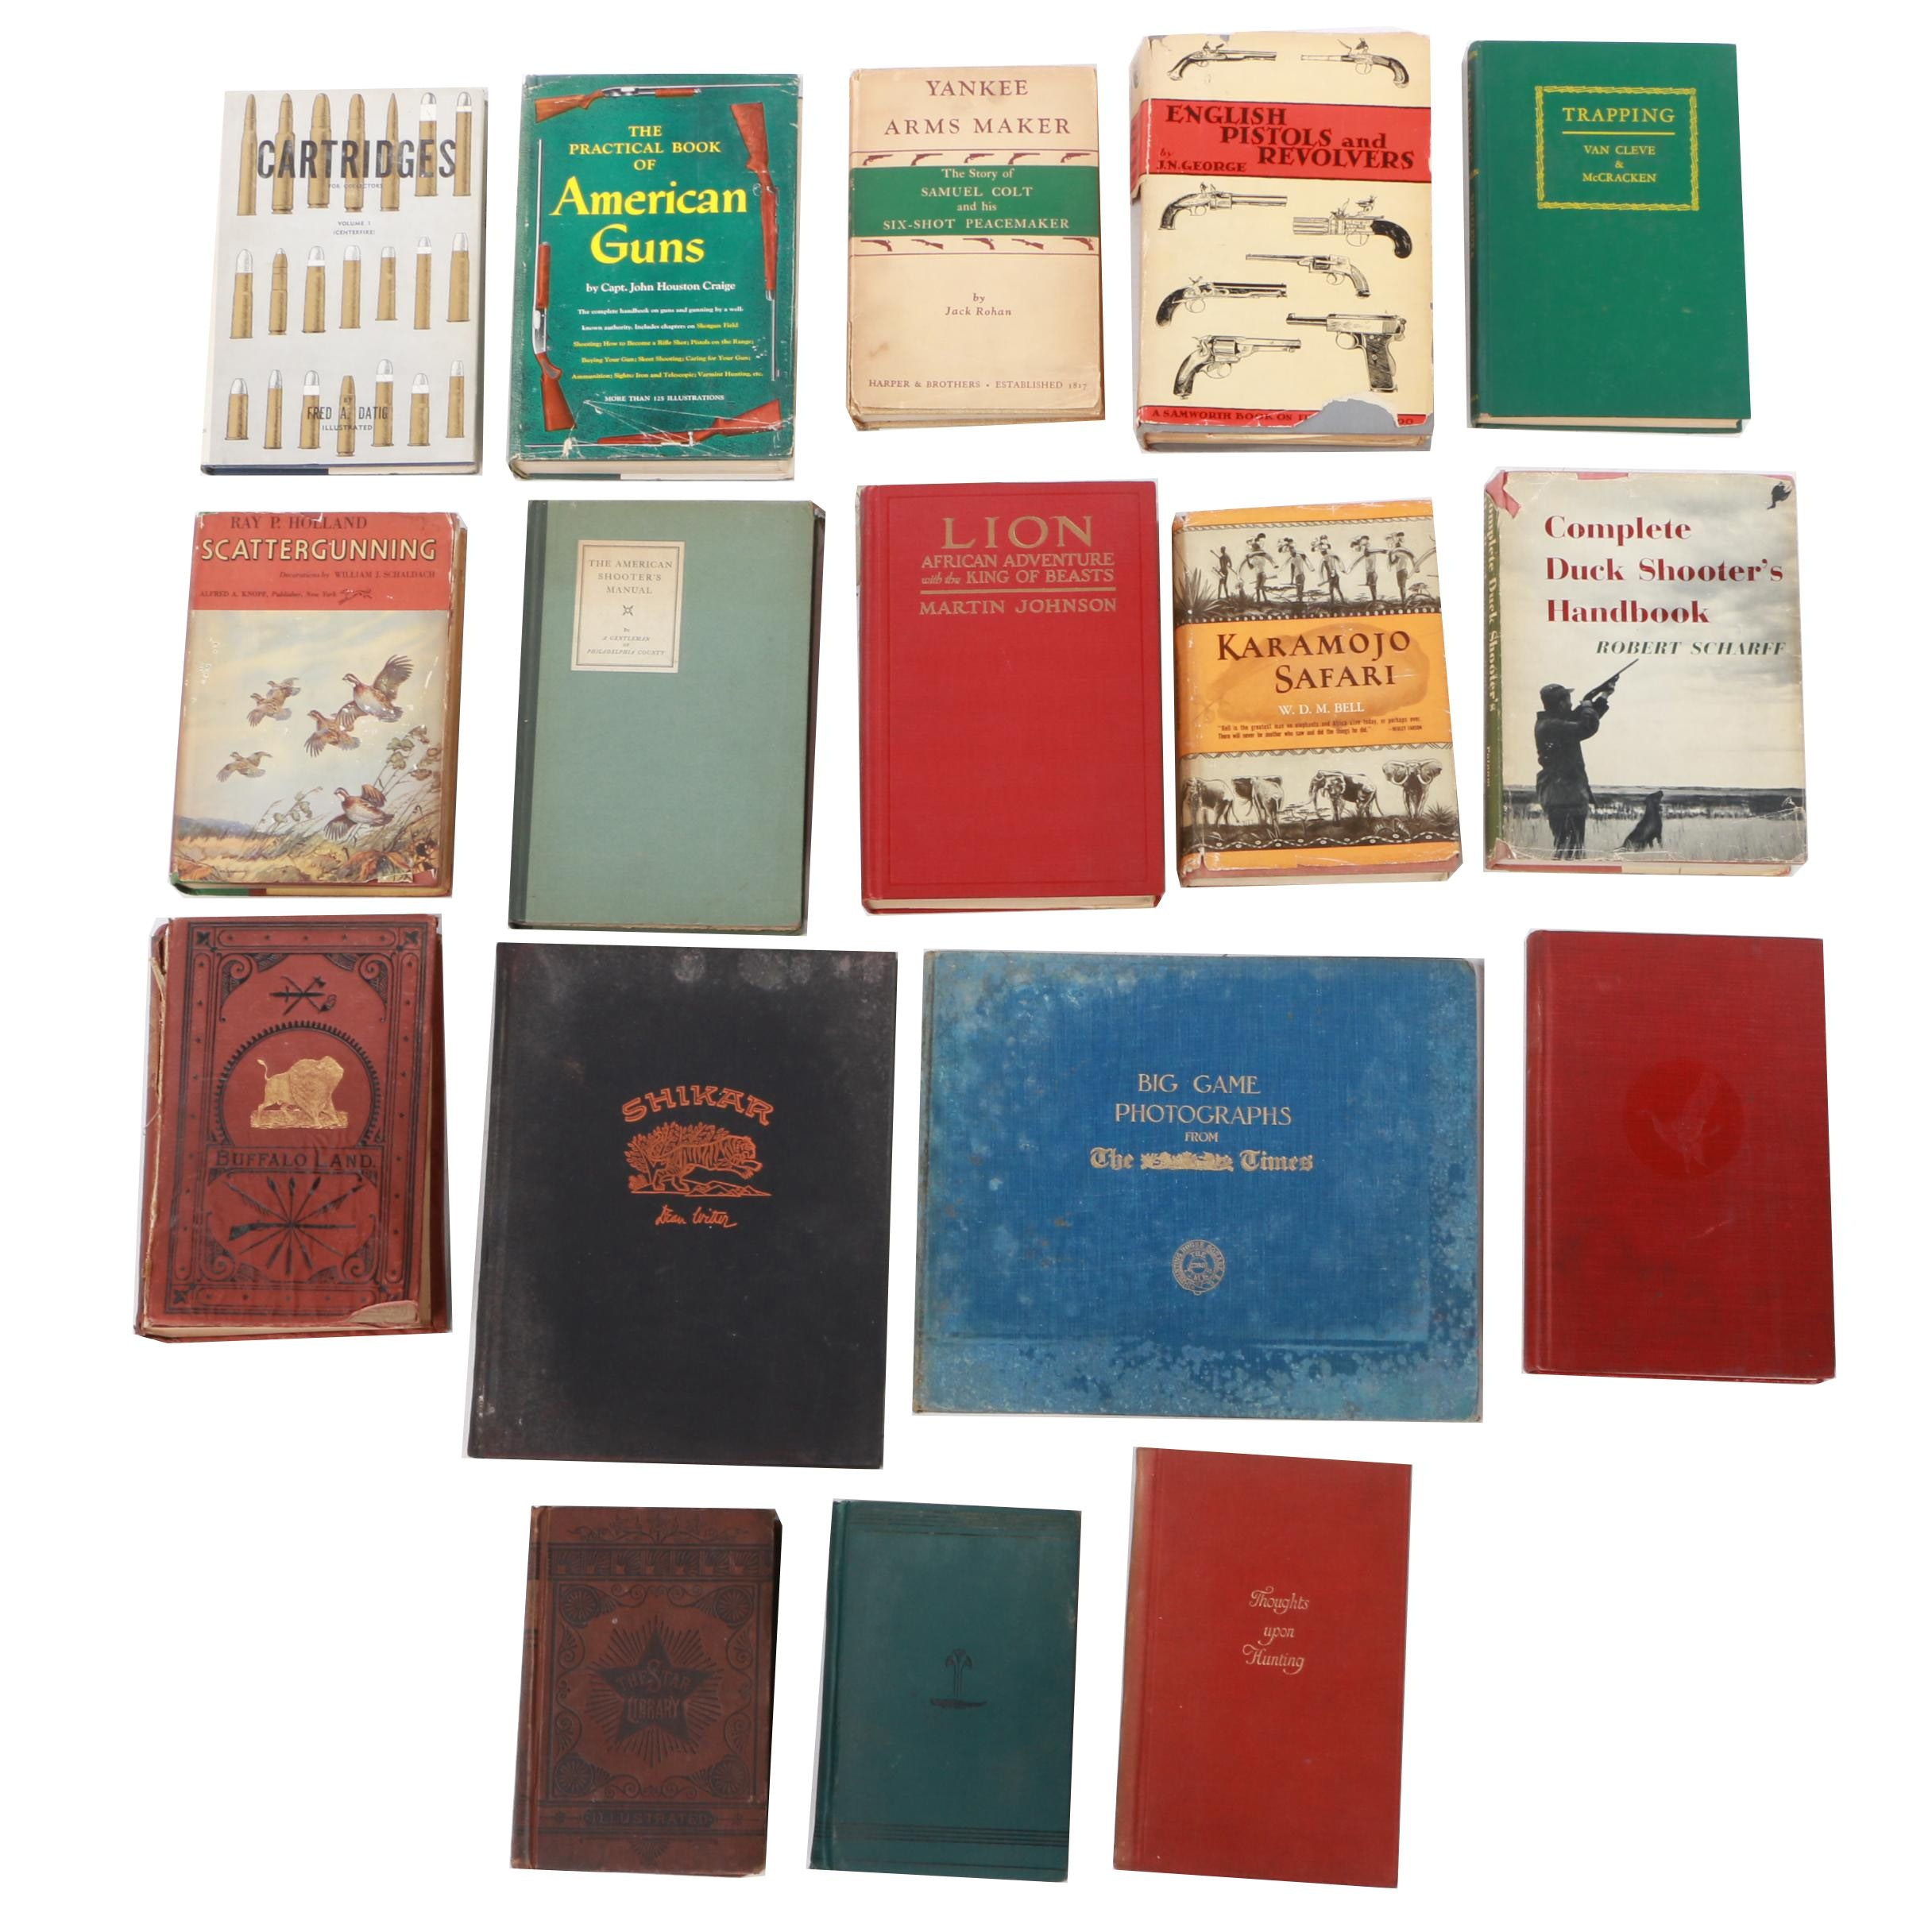 Assorted Nonfiction Books including Hunting and Firearms